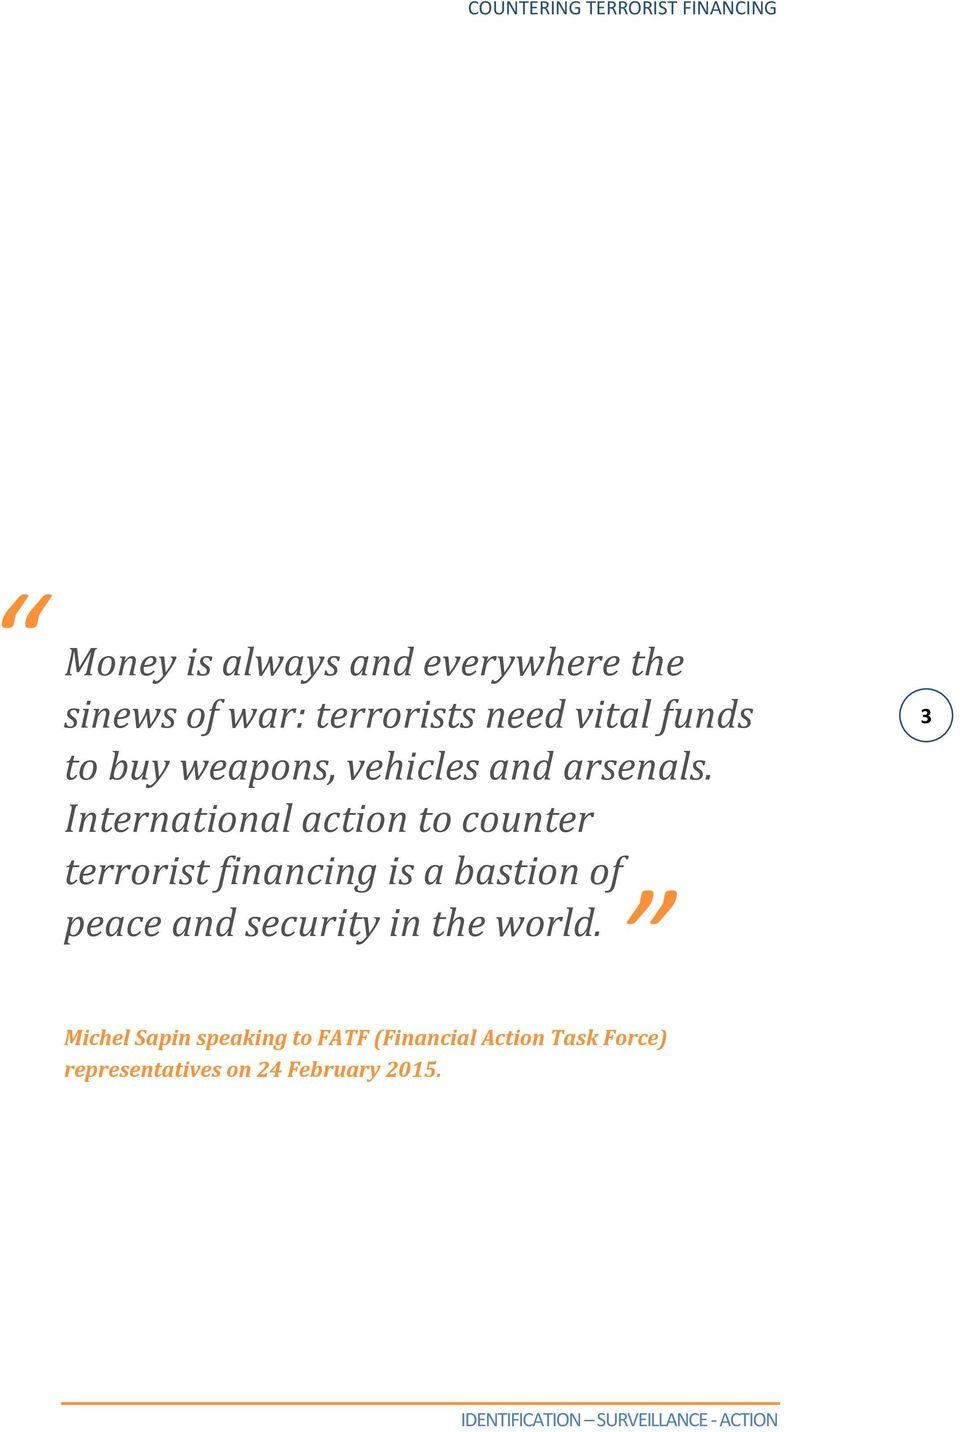 International action to counter terrorist financing is a bastion of peace and